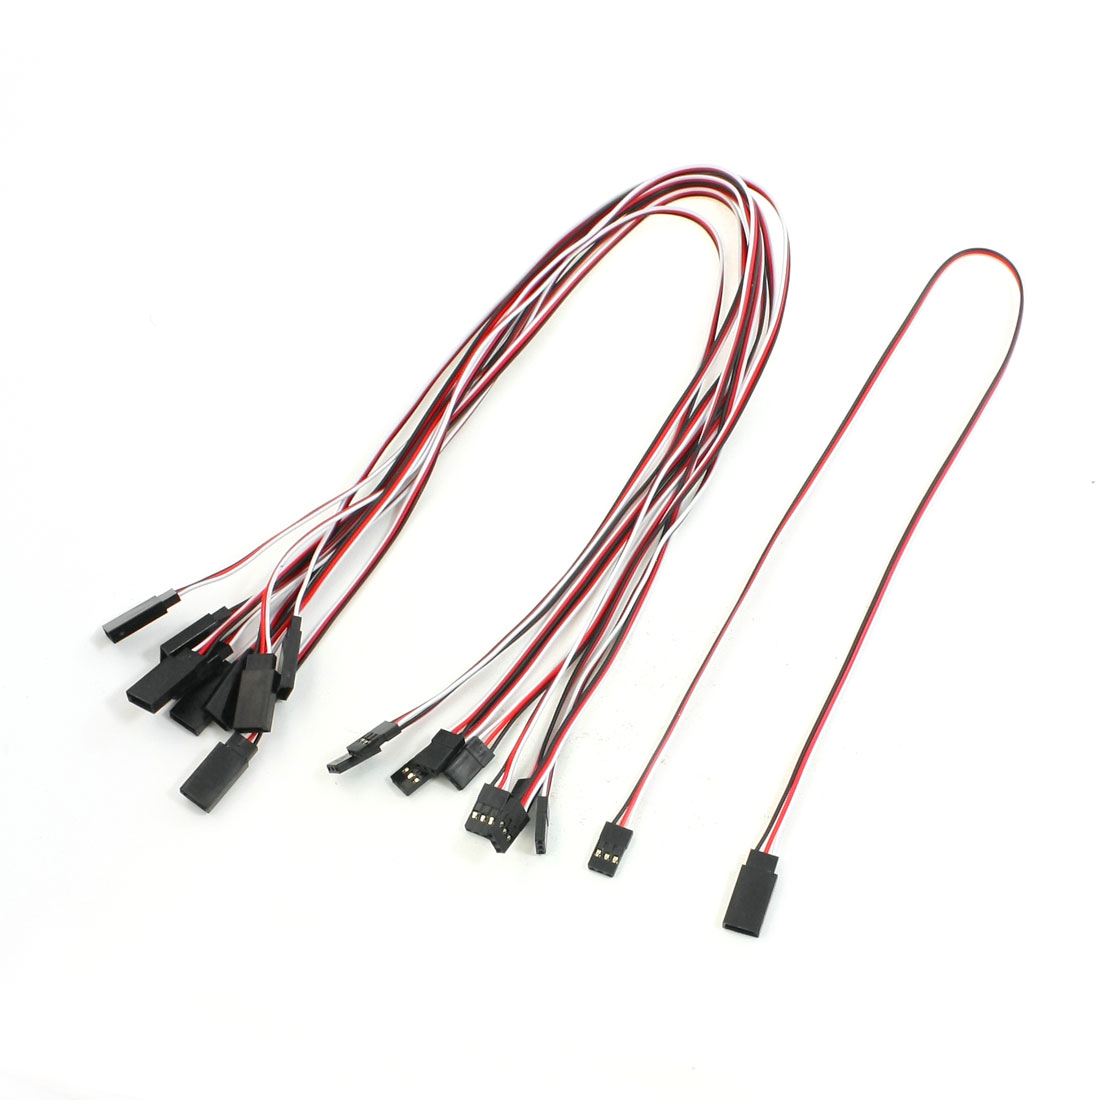 "Unique Bargains 10 Pcs 19.7"" Length RC Helicopter Part 3P M/F RC Servo Extension Cable"